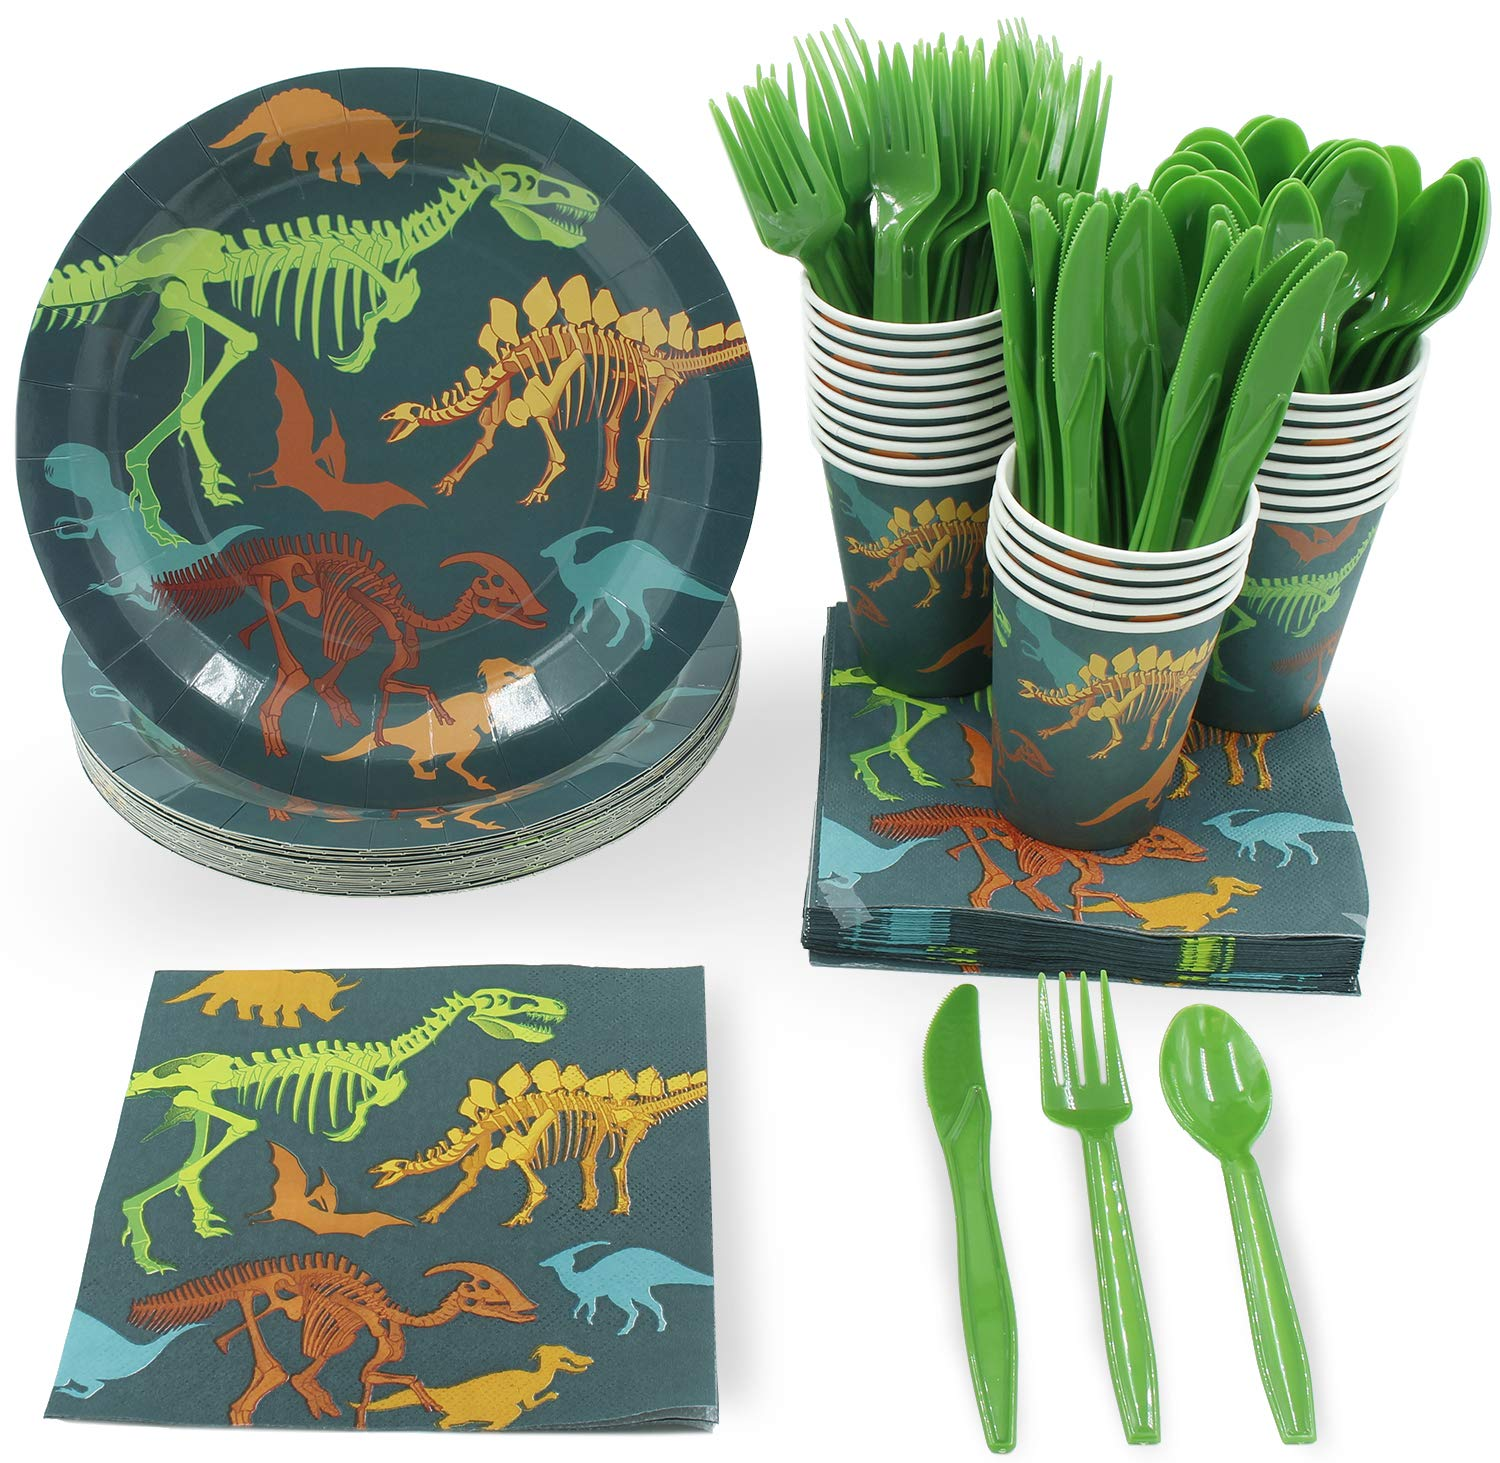 Disposable Dinnerware Set - Serves 24 - Dinosaur Themed Party Supplies for Kids Birthdays, Dino Fossil Skeleton Design, Includes Plastic Knives, Spoons, Forks, Paper Plates, Napkins, Cups by Juvale